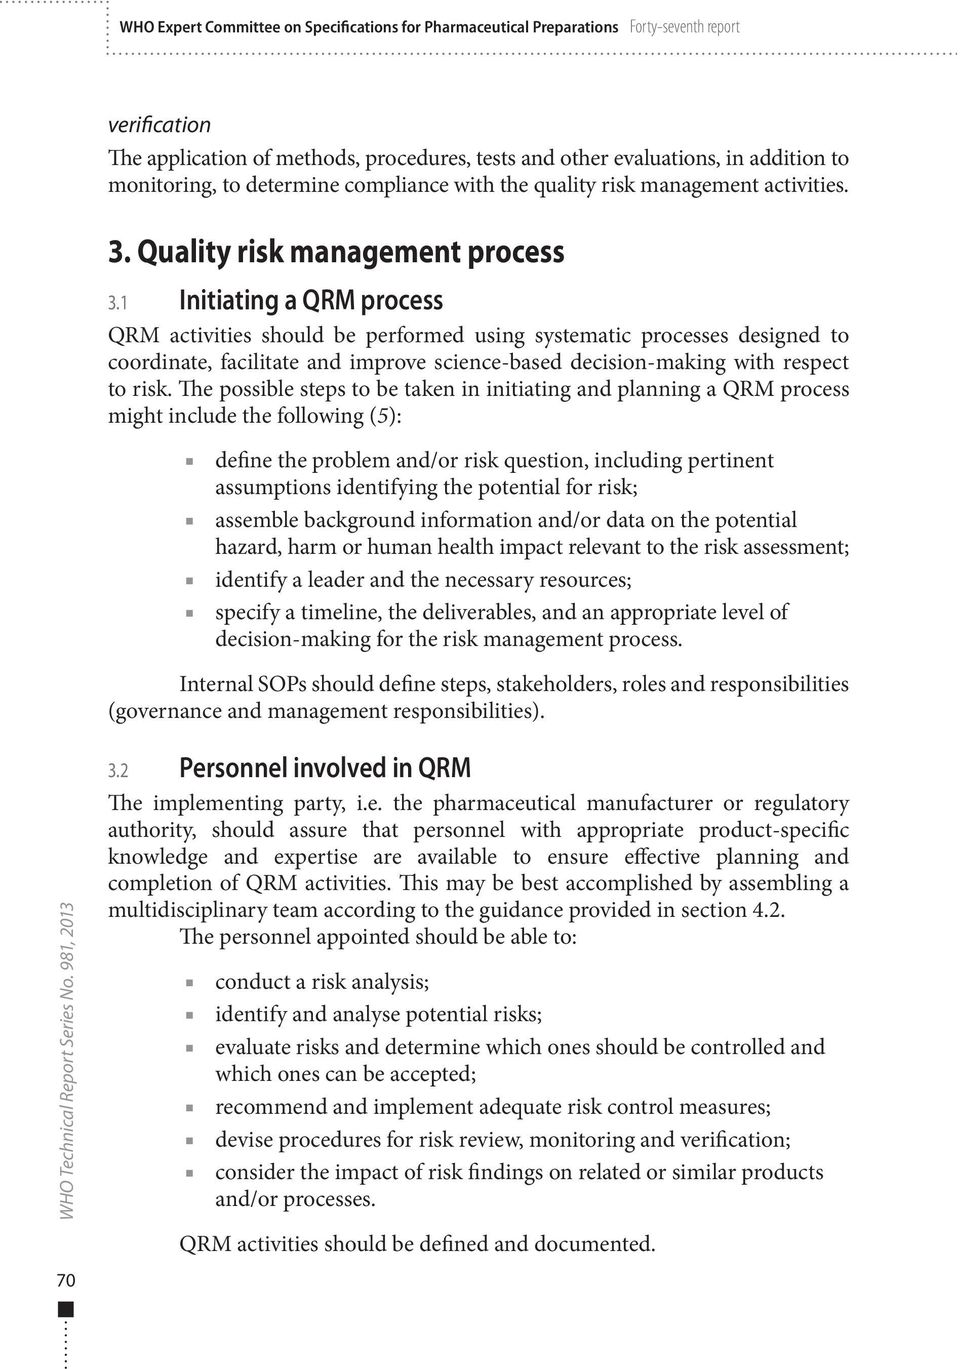 1 Initiating a QRM process QRM activities should be performed using systematic processes designed to coordinate, facilitate and improve science-based decision-making with respect to risk.